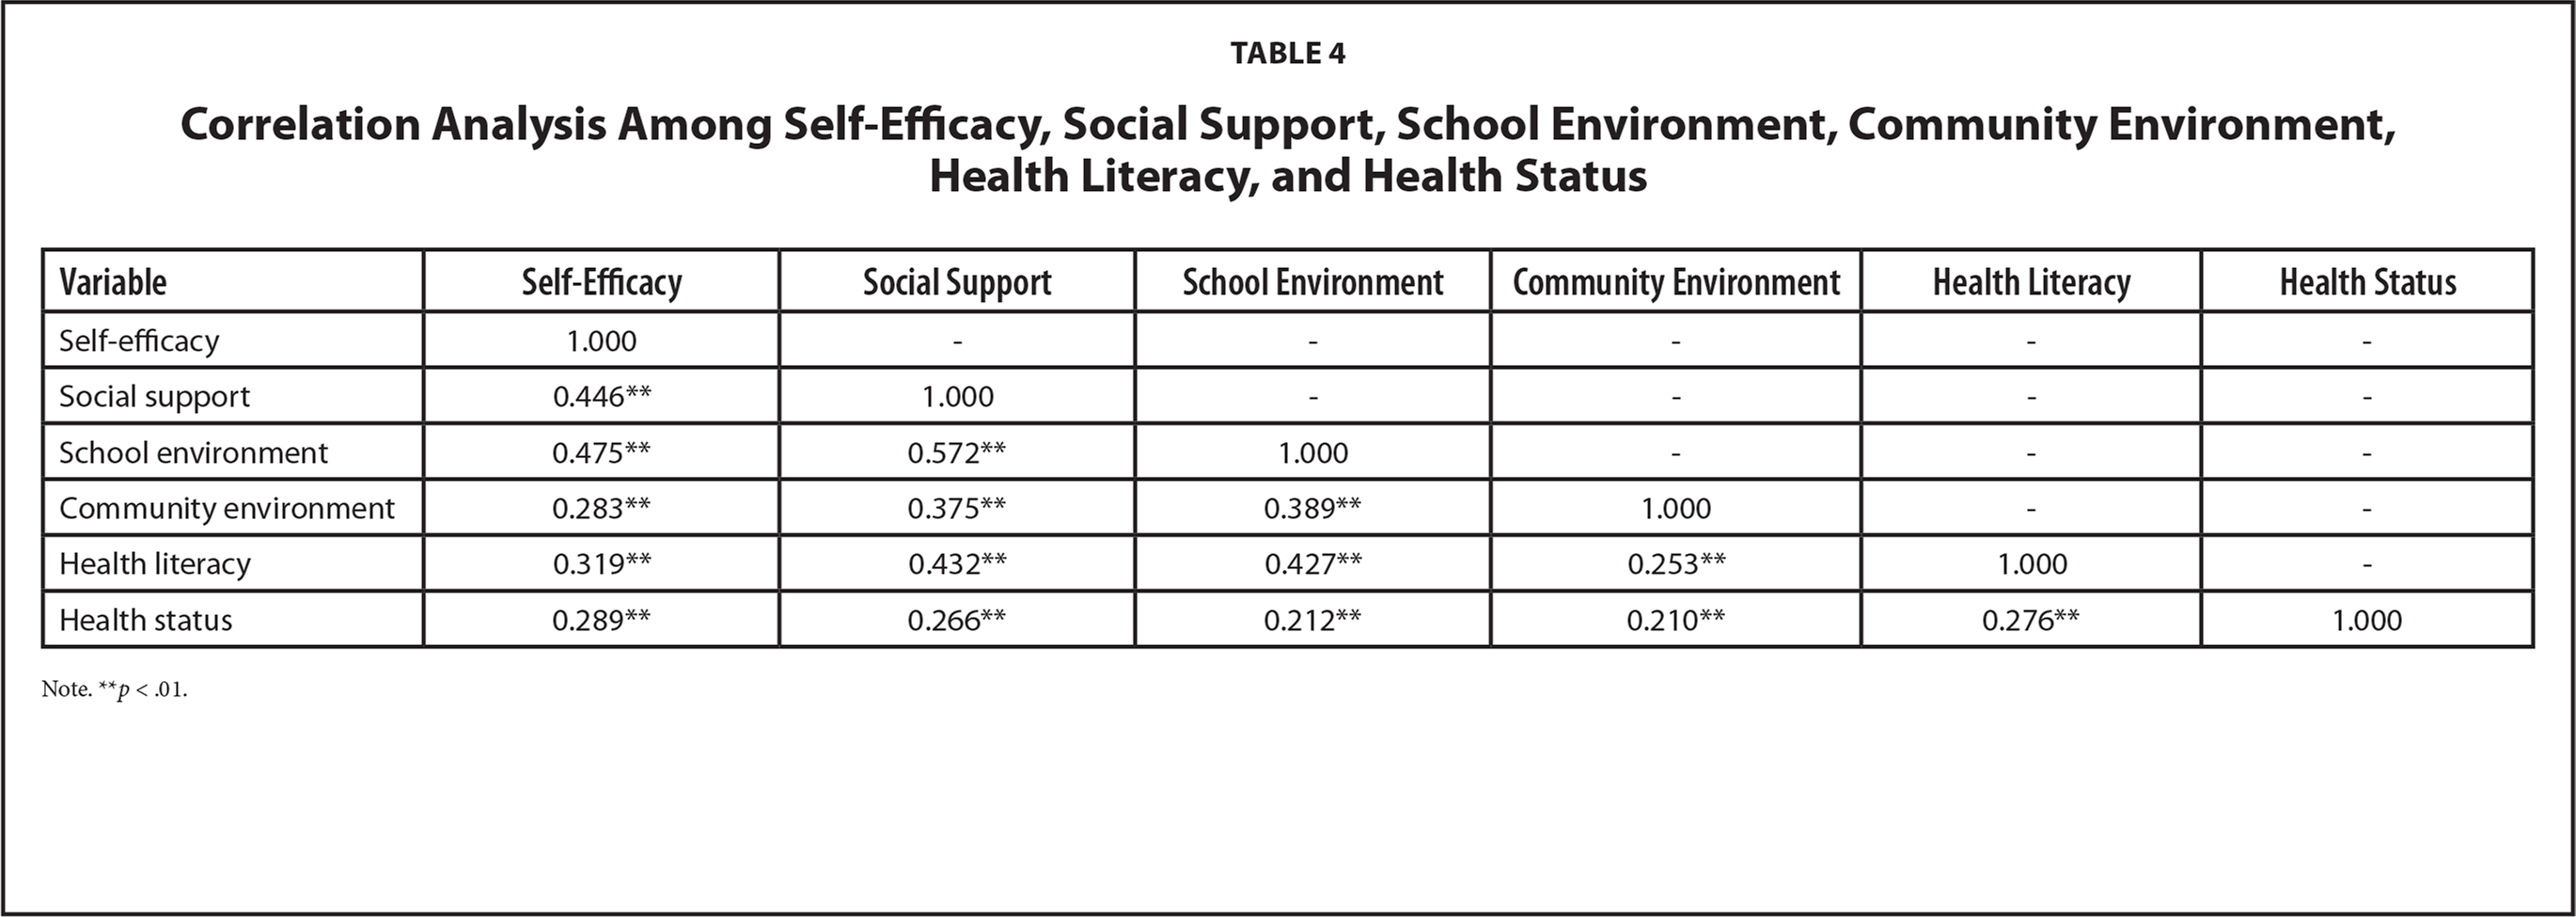 Correlation Analysis Among Self-Efficacy, Social Support, School Environment, Community Environment, Health Literacy, and Health Status